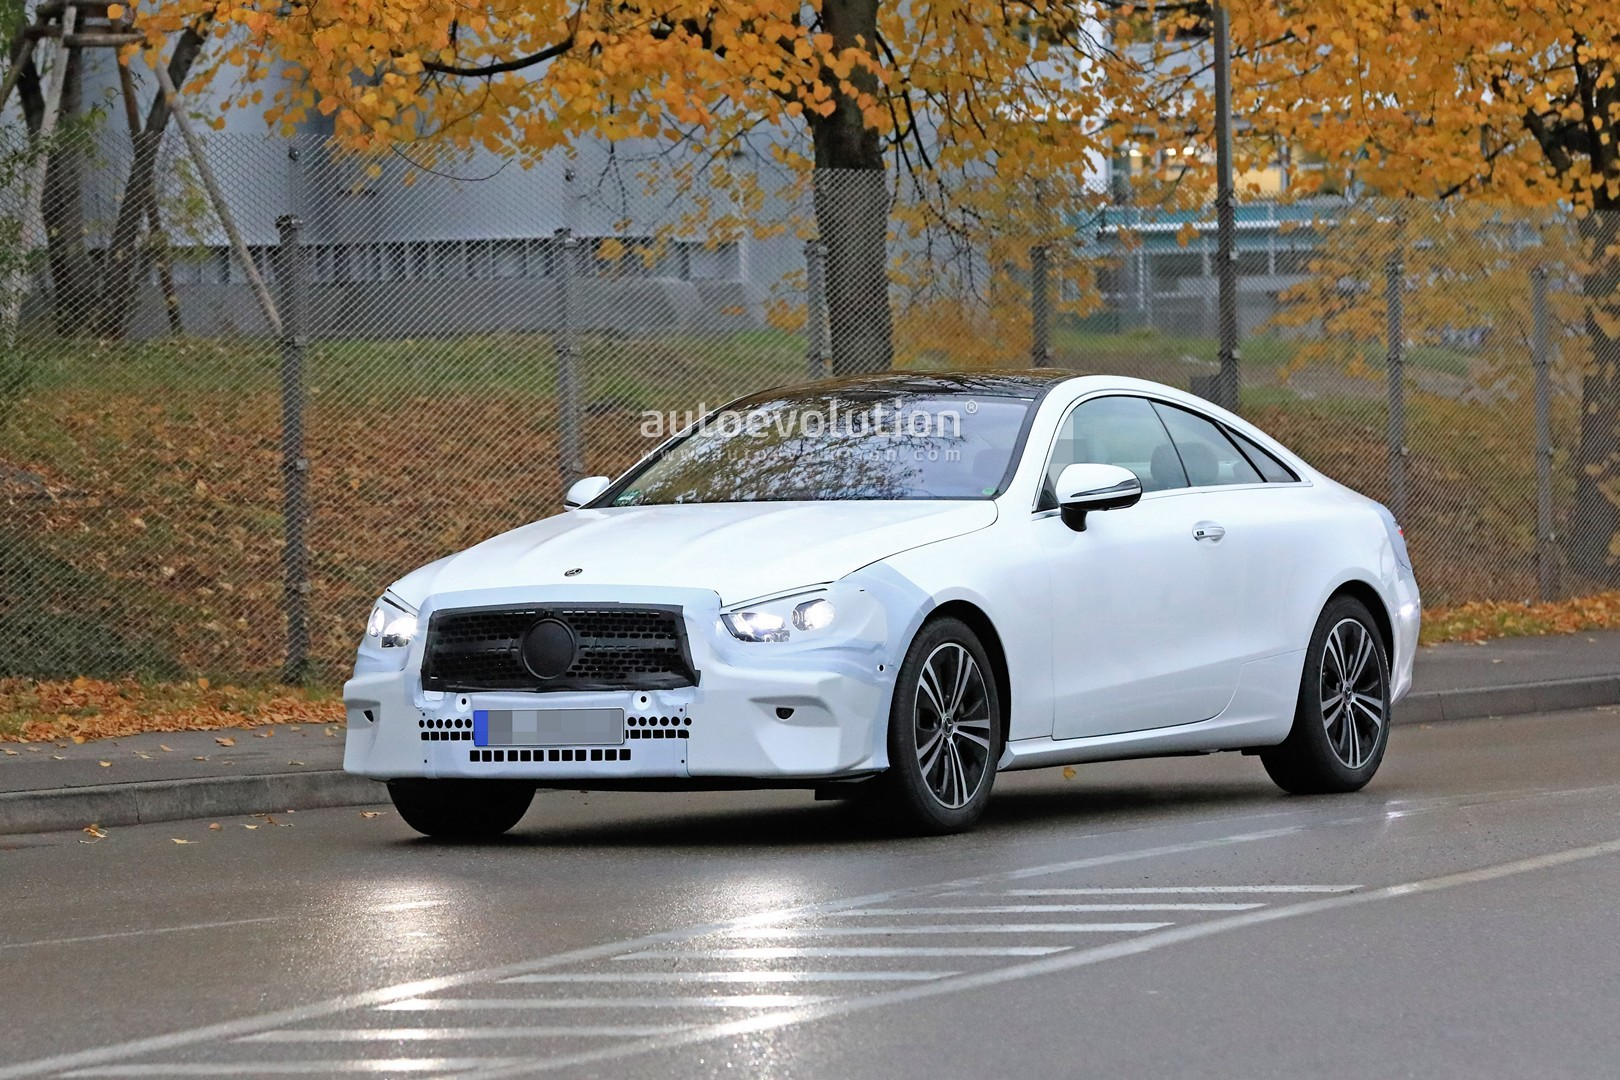 2020 Mercedes-Benz E-Class Coupe Facelift Spied for the ...